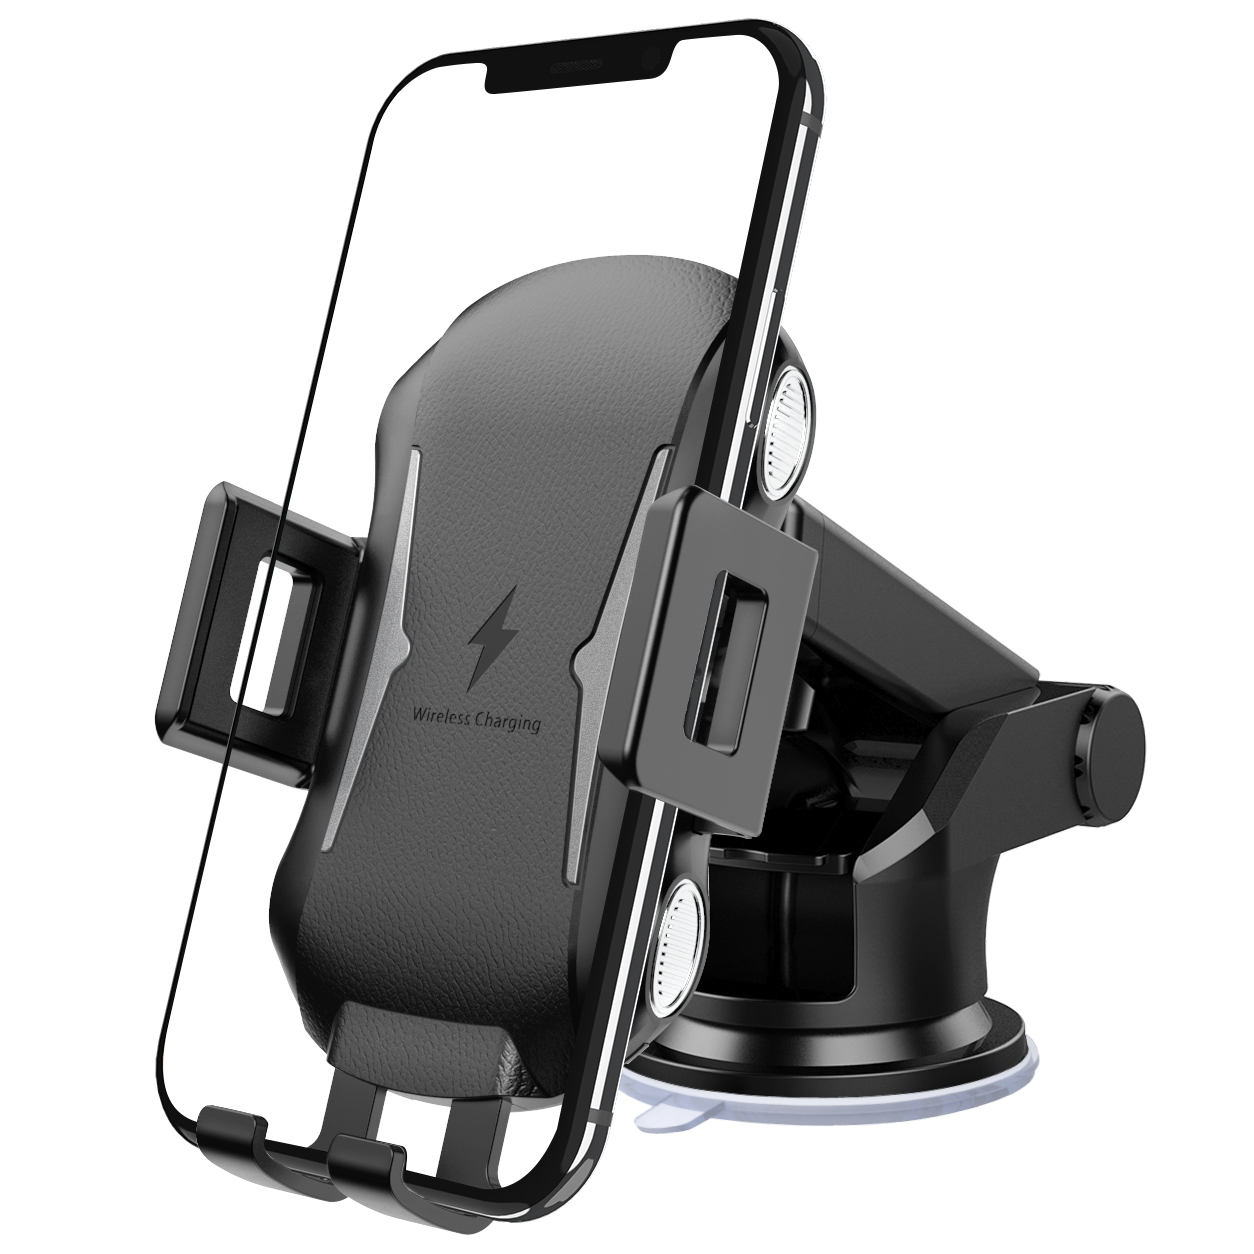 New c20 smart fast charge car phone wireless charger bracket outlet sucker FOR:IPHONE Samsung Huawei xiaomi OPPO VIVO|Wireless Chargers| |  - title=